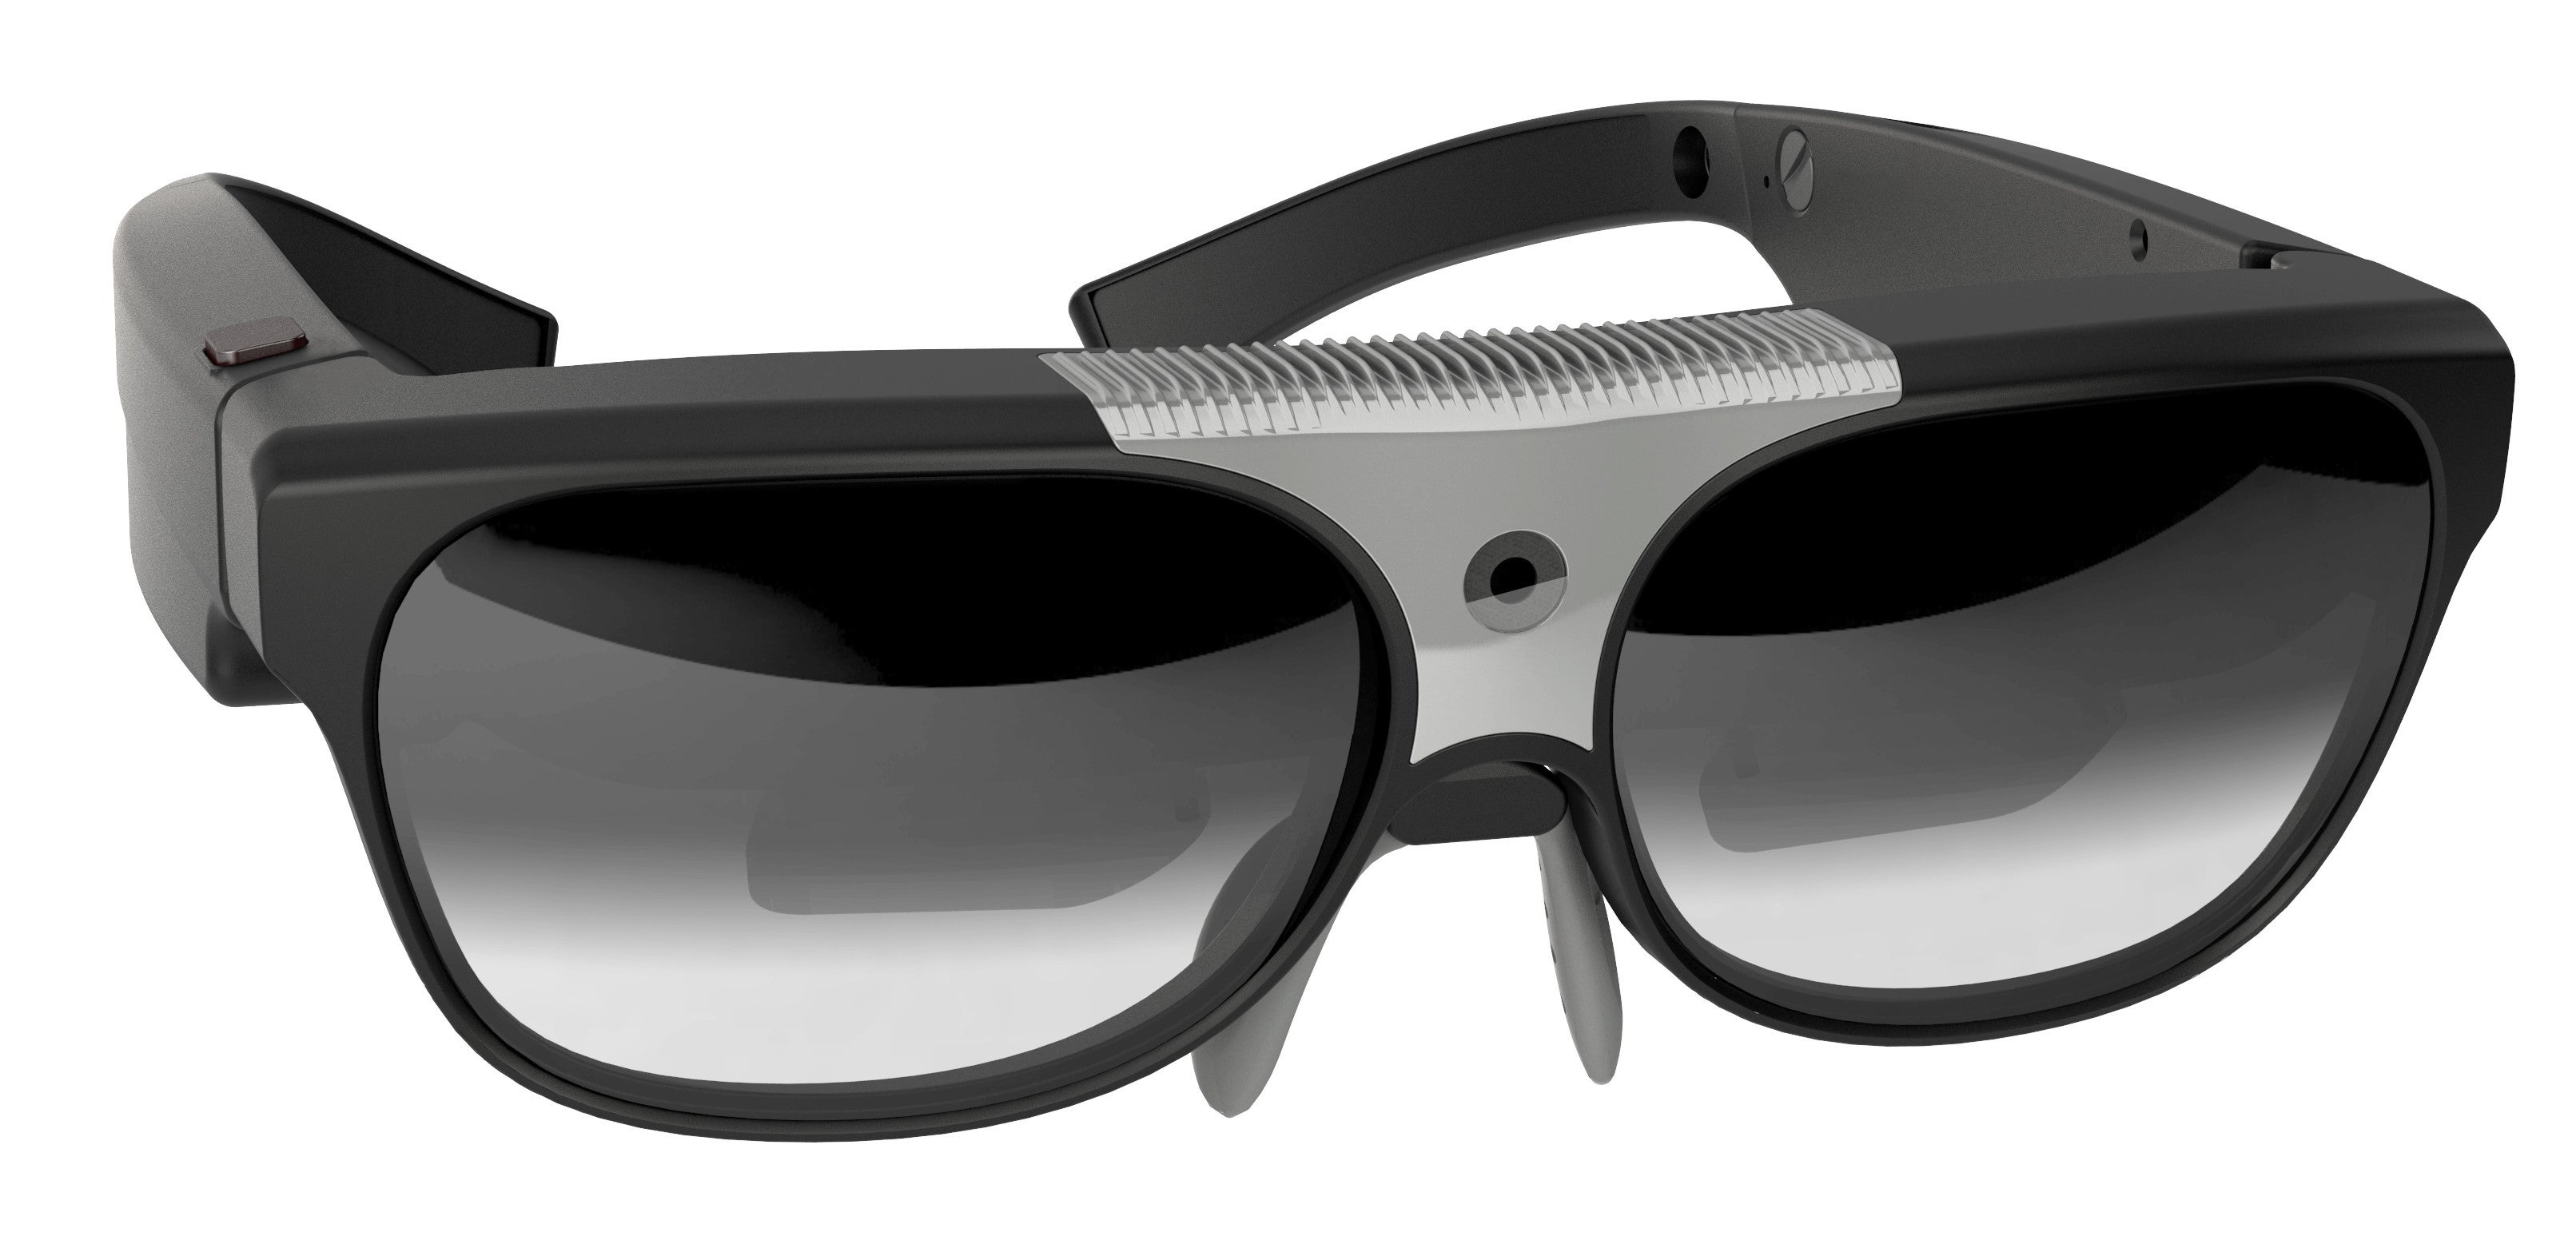 These Augmented Reality Glasses Are James Bond-Worthy